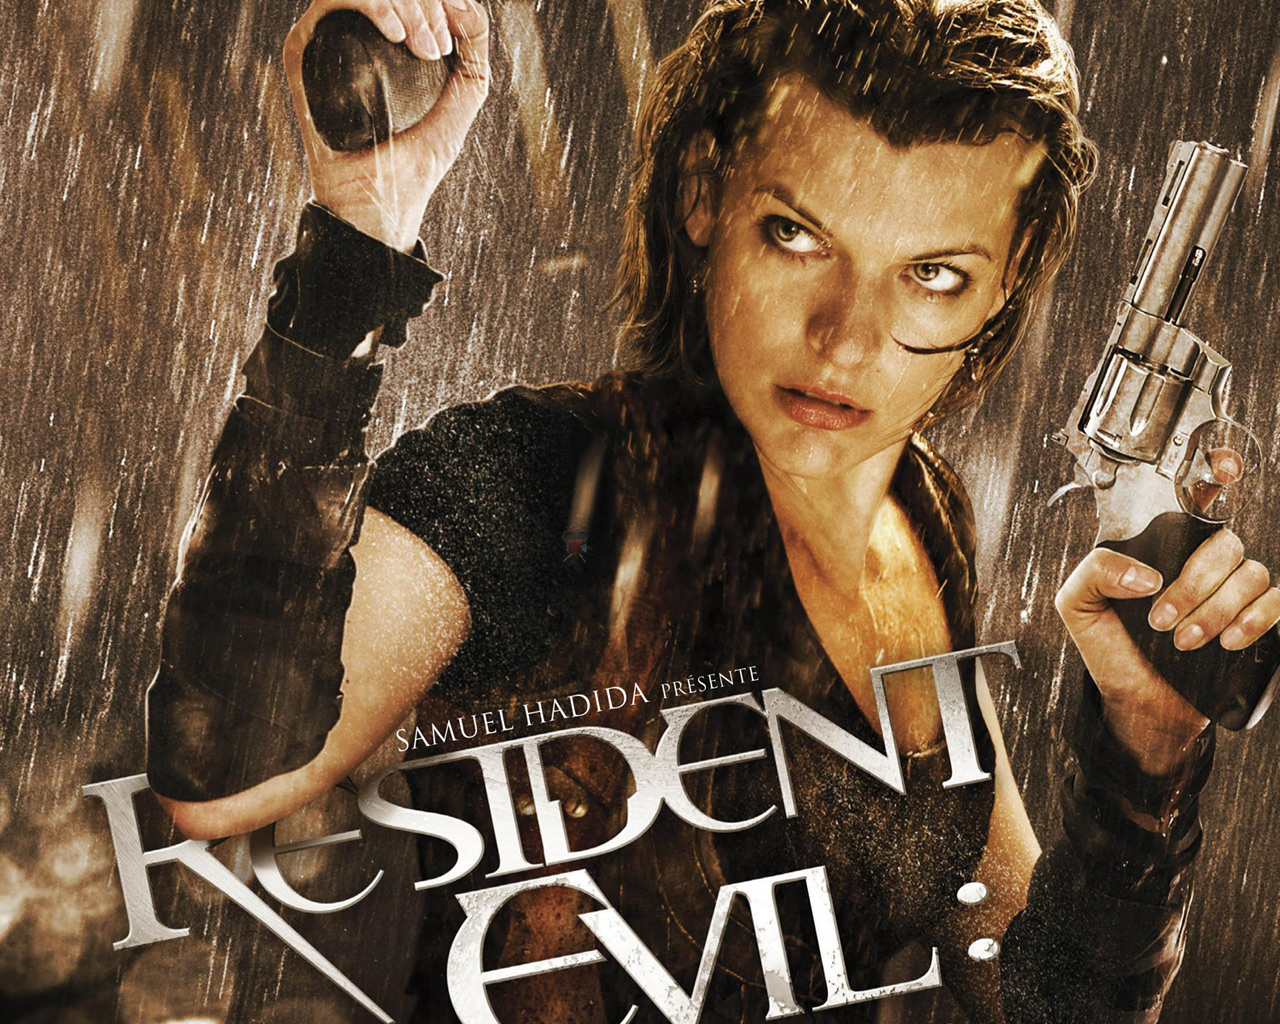 Desktop Wallpapers Resident Evil - Movies Resident Evil 4: Afterlife Milla Jovovich Movies